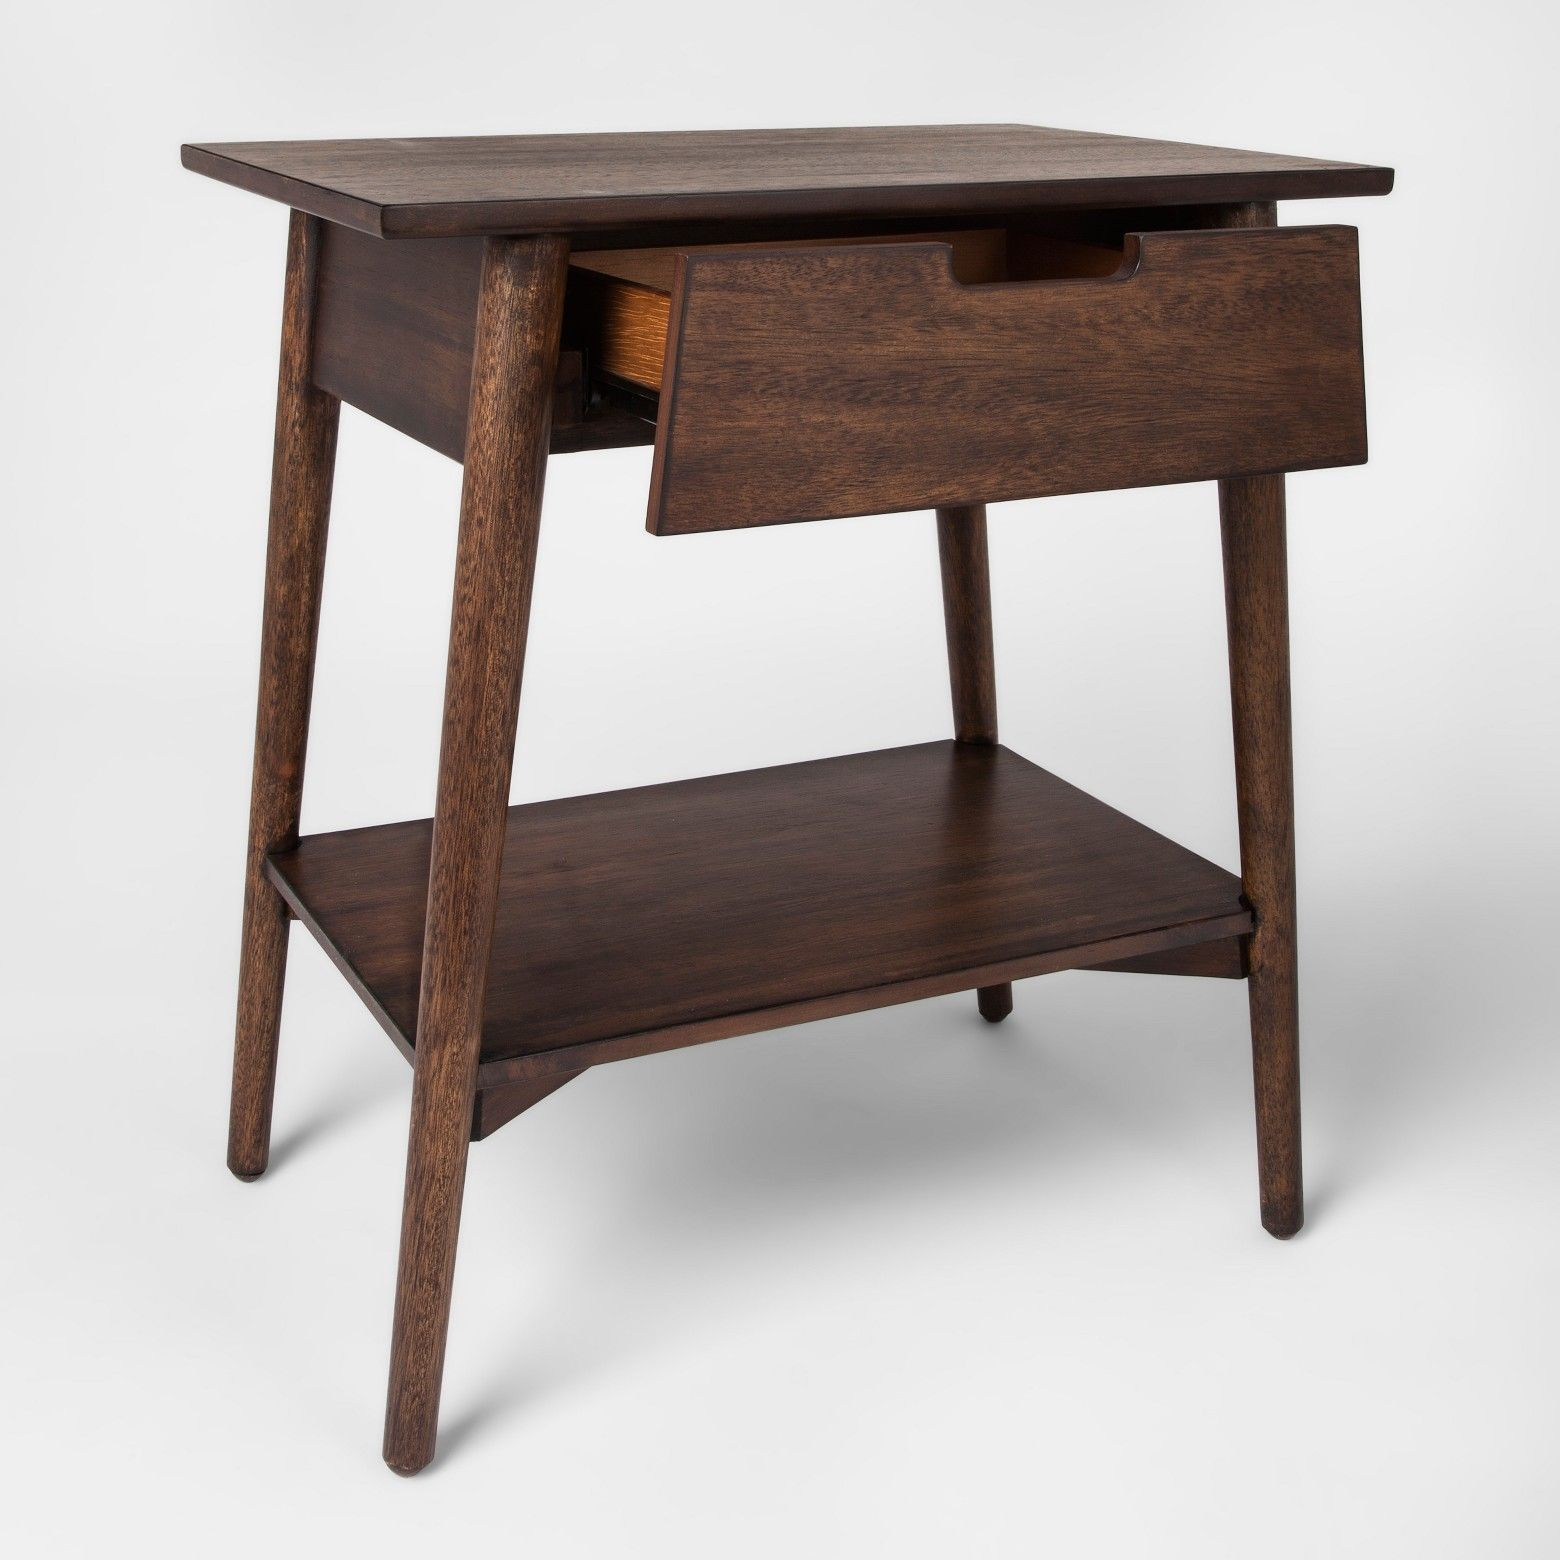 the terrific awesome berwyn end table metal and wood rustic brown walnut one drawer accent project furniture threshold convertible small pine bookcase round linen tablecloths